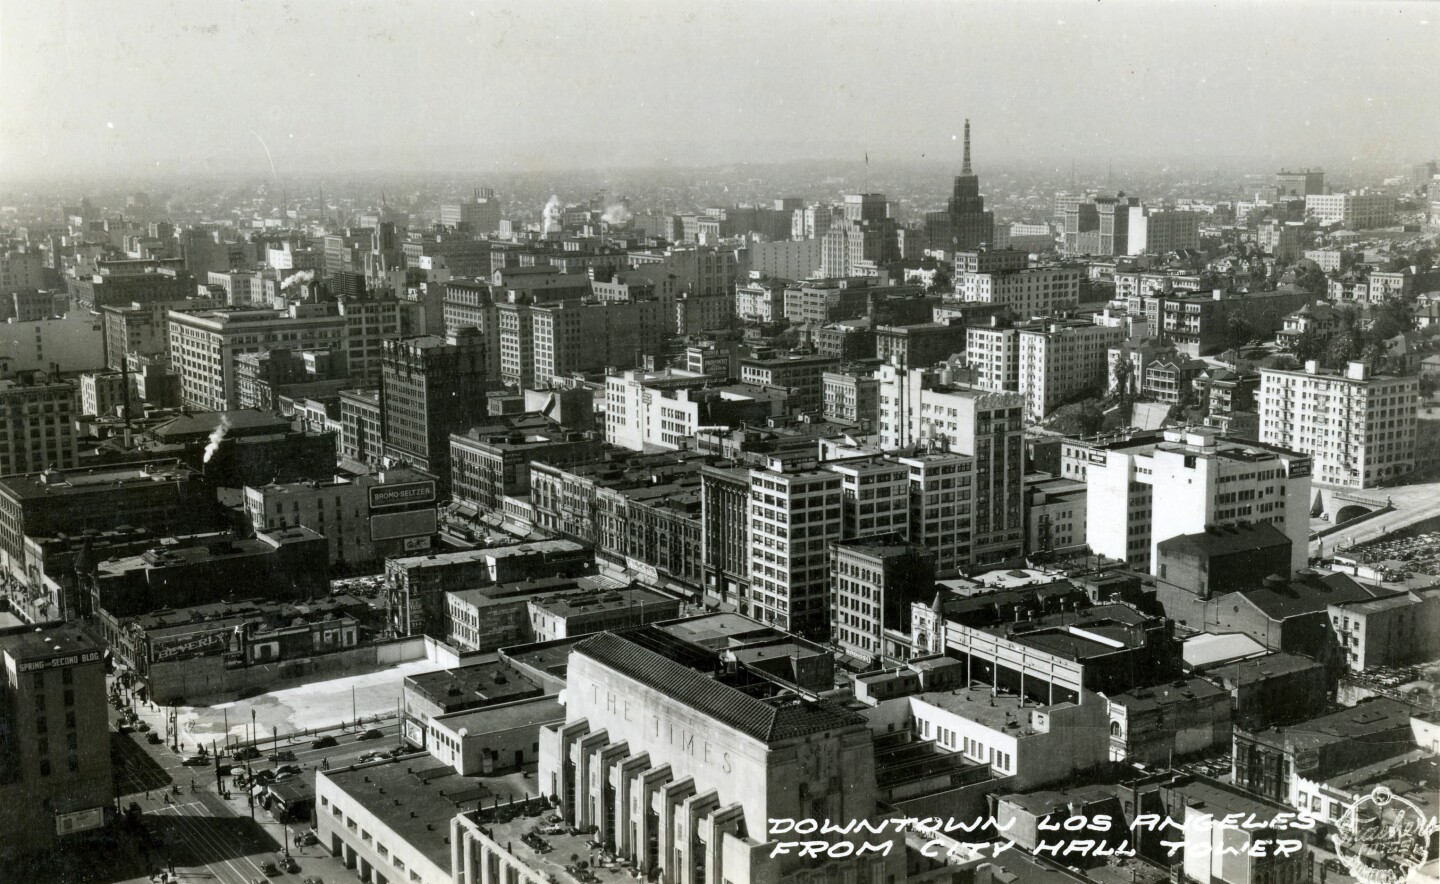 A circa 1935 postcard of downtown Los Angeles. Courtesy of the Werner von Boltenstern Postcard Collection, Department of Archives and Special Collections, William H. Hannon Library, Loyola Marymount University.